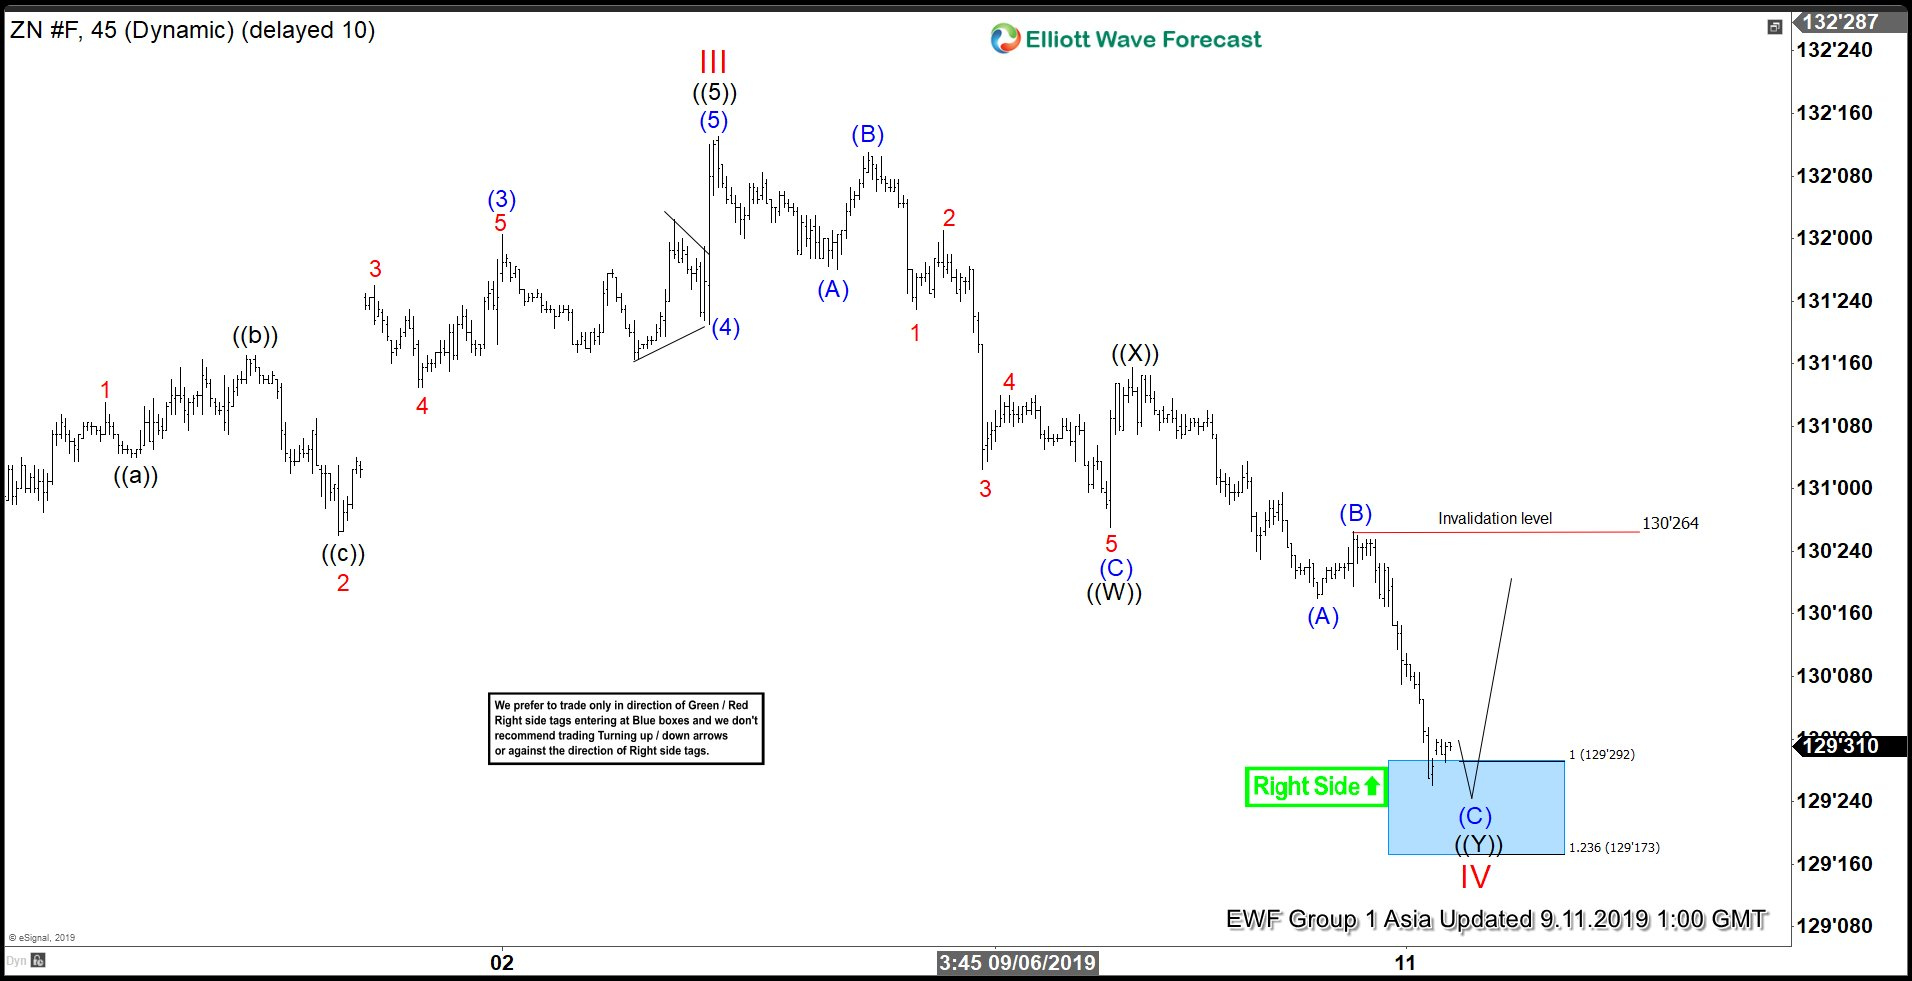 Elliott Wave View: 10 Year Treasury Notes (ZN_F) at Support Area